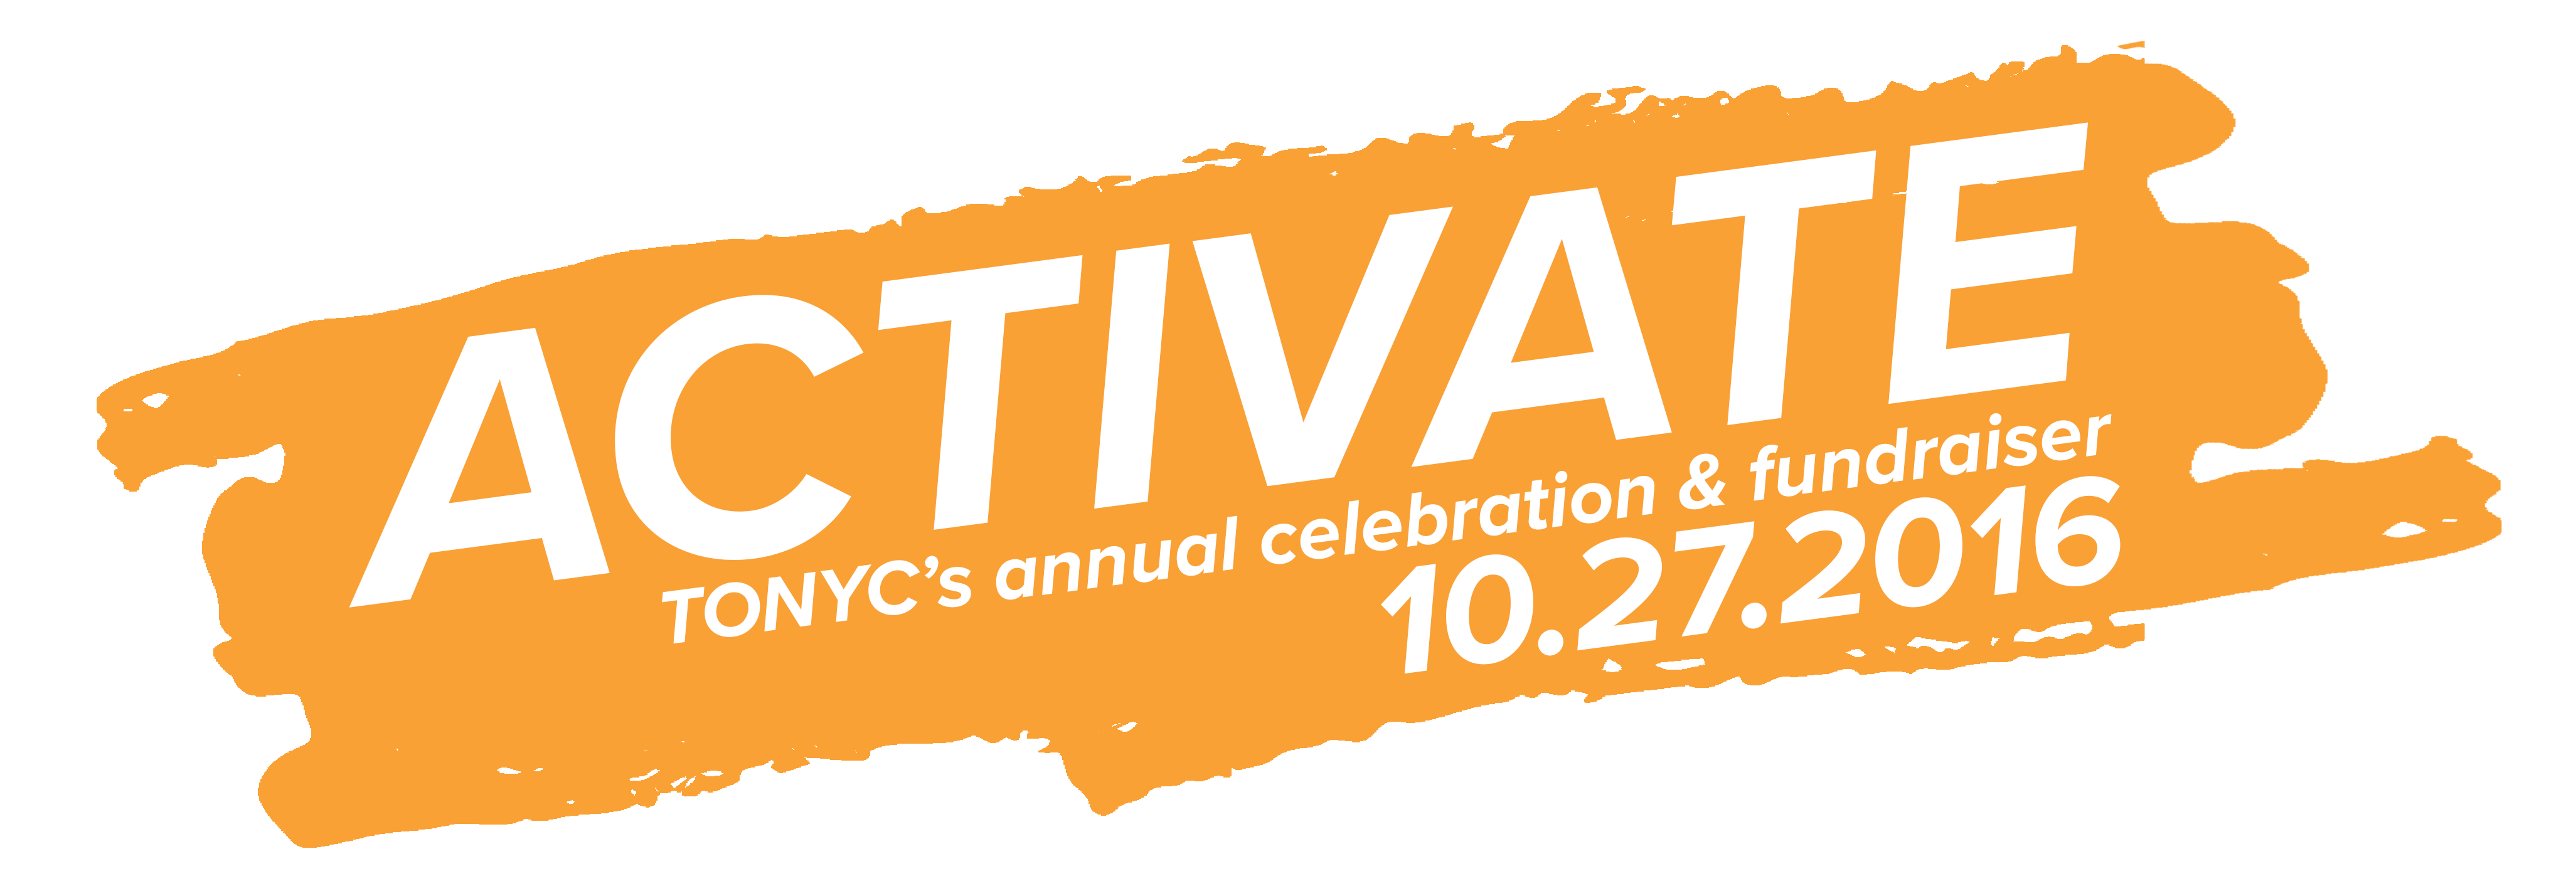 activate_2016_save_the_date_banner_for_web.png